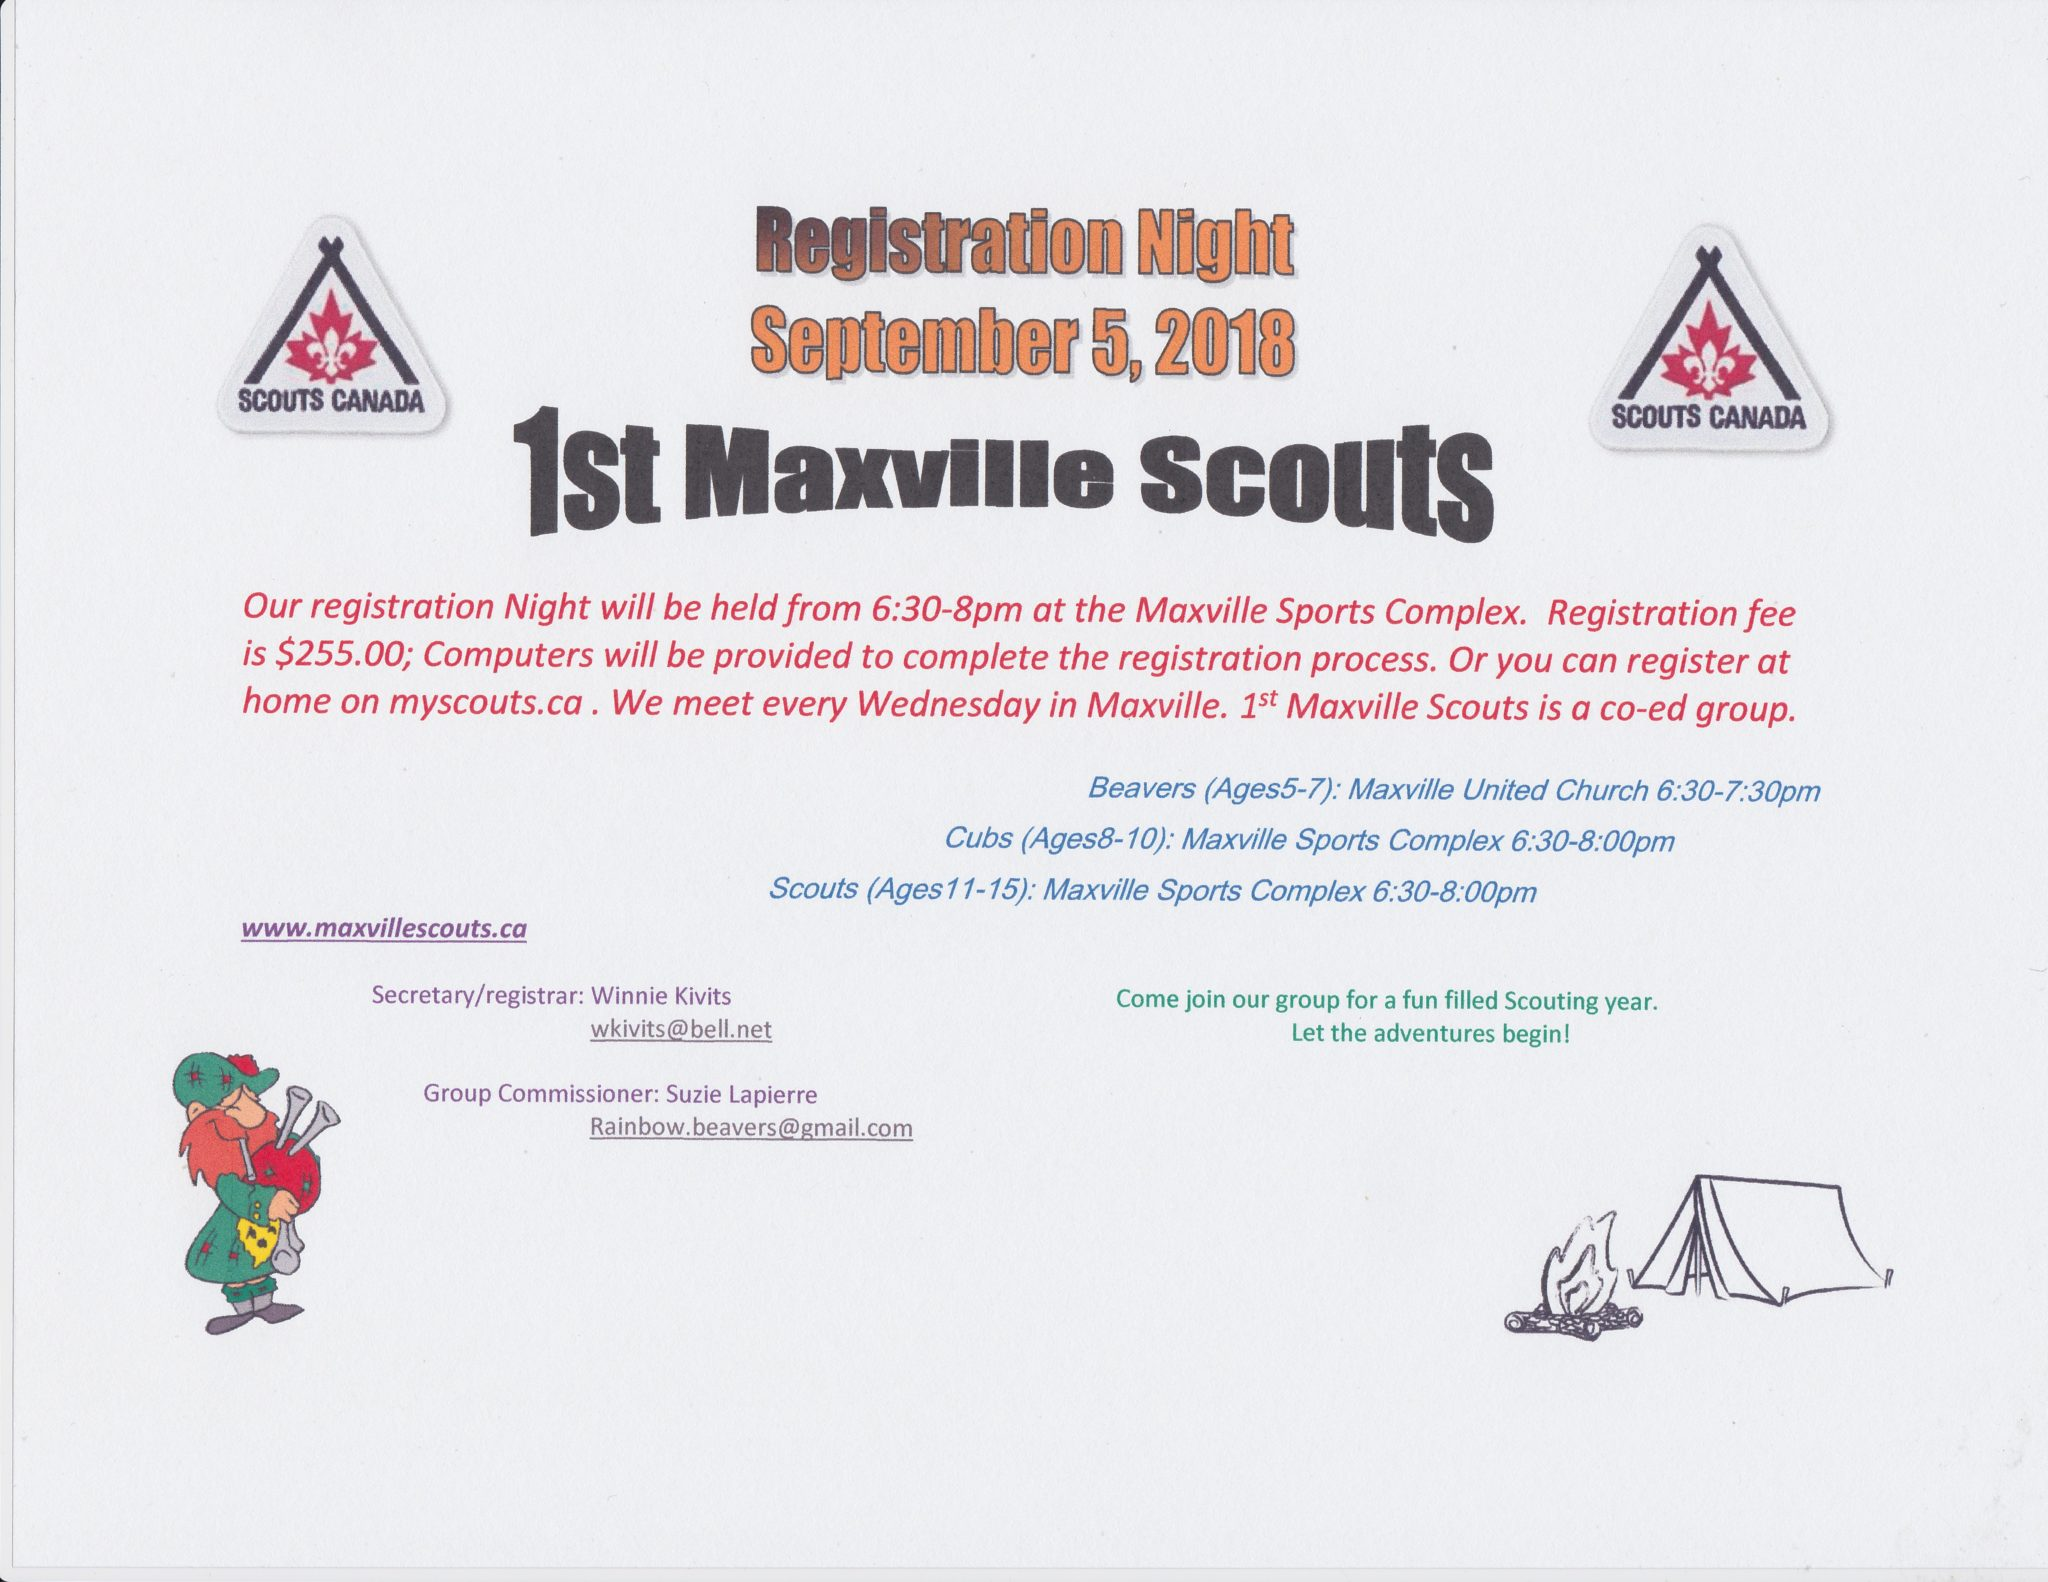 1st Maxville Scouts registration on September 5 at Maxville